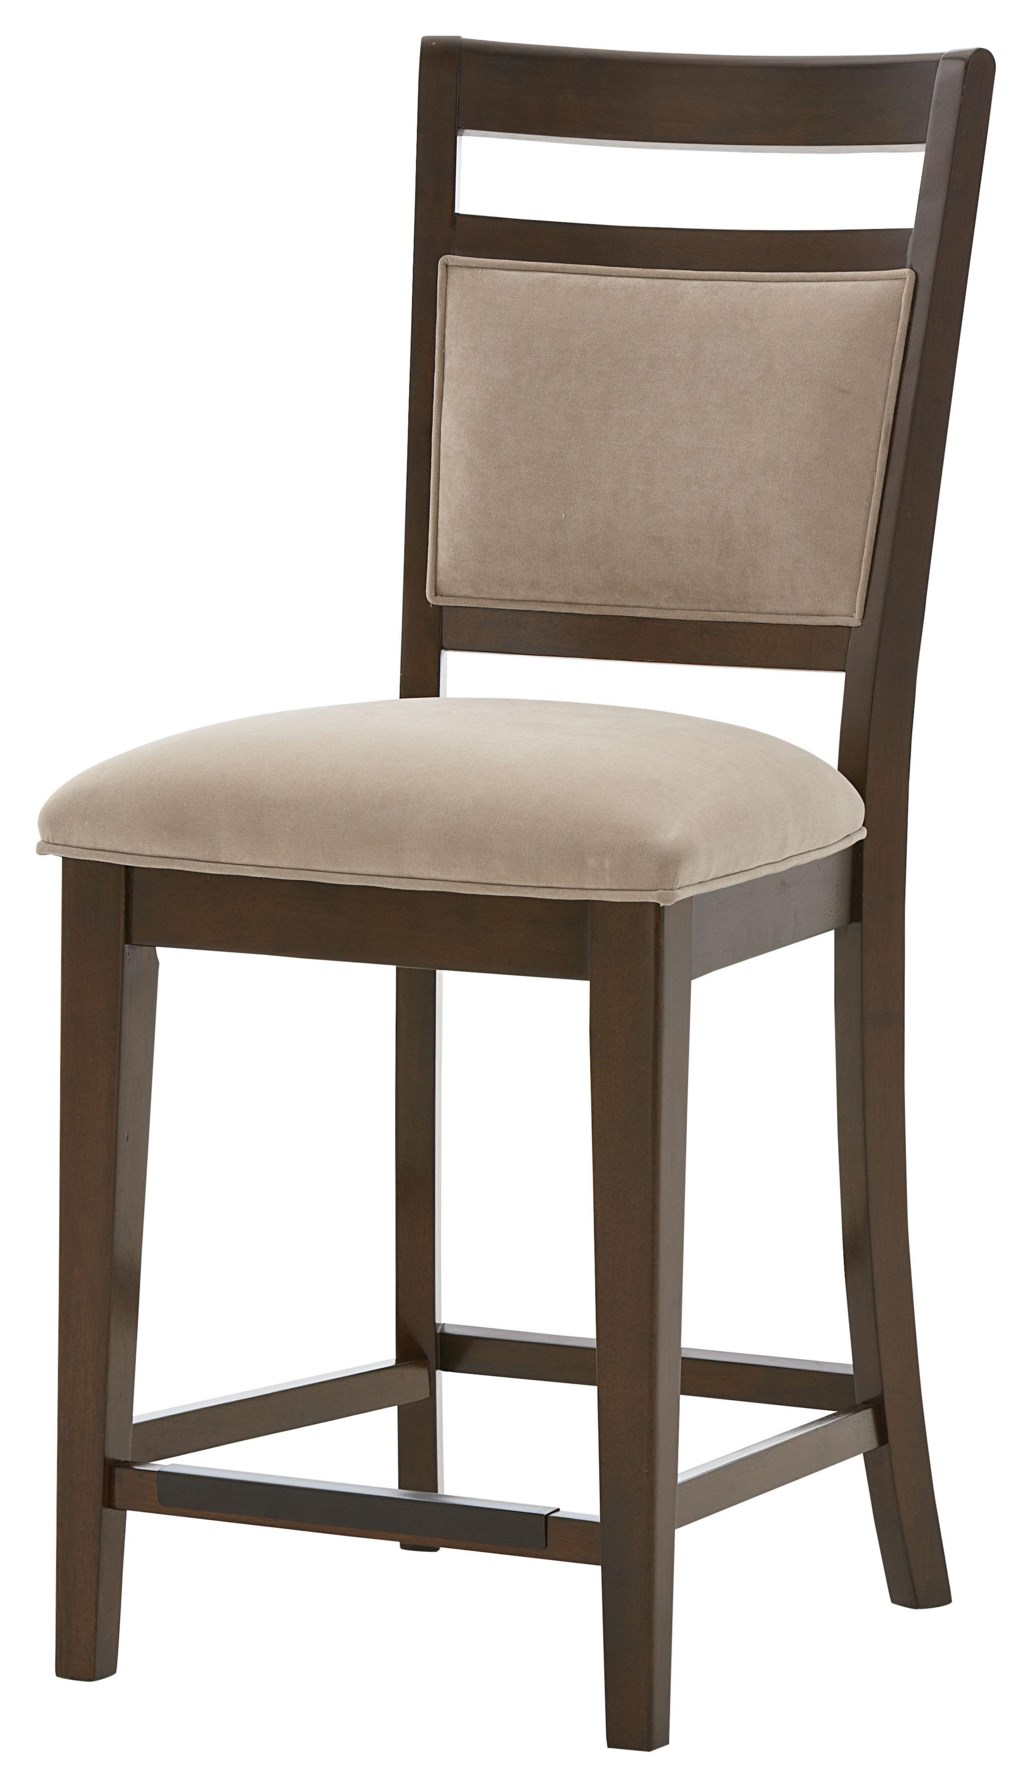 standard furniture avion counter height chair with upholstered